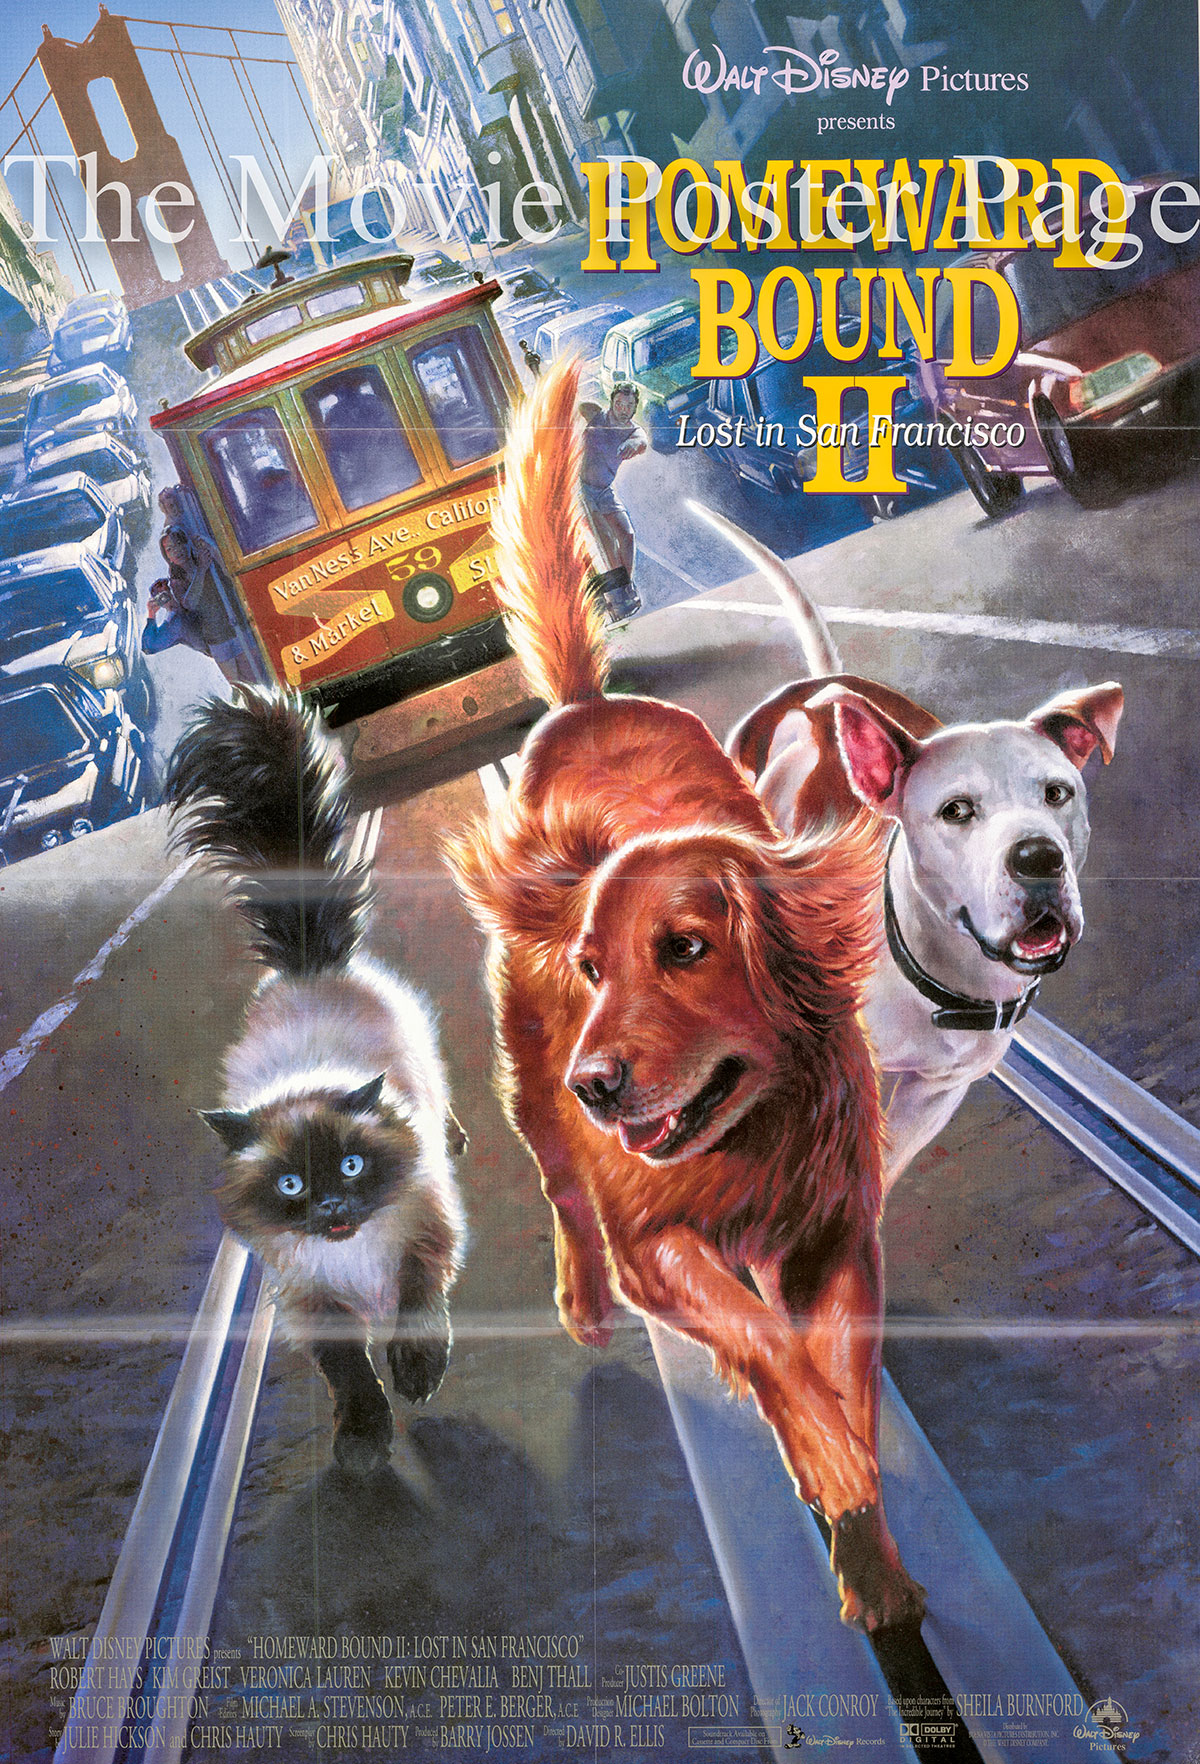 Pictured is a US one-sheet promotional poster for the 1996 David R. Ellis film Homeward Bound II: Lost in San Francisco starring Veronica Lauren.